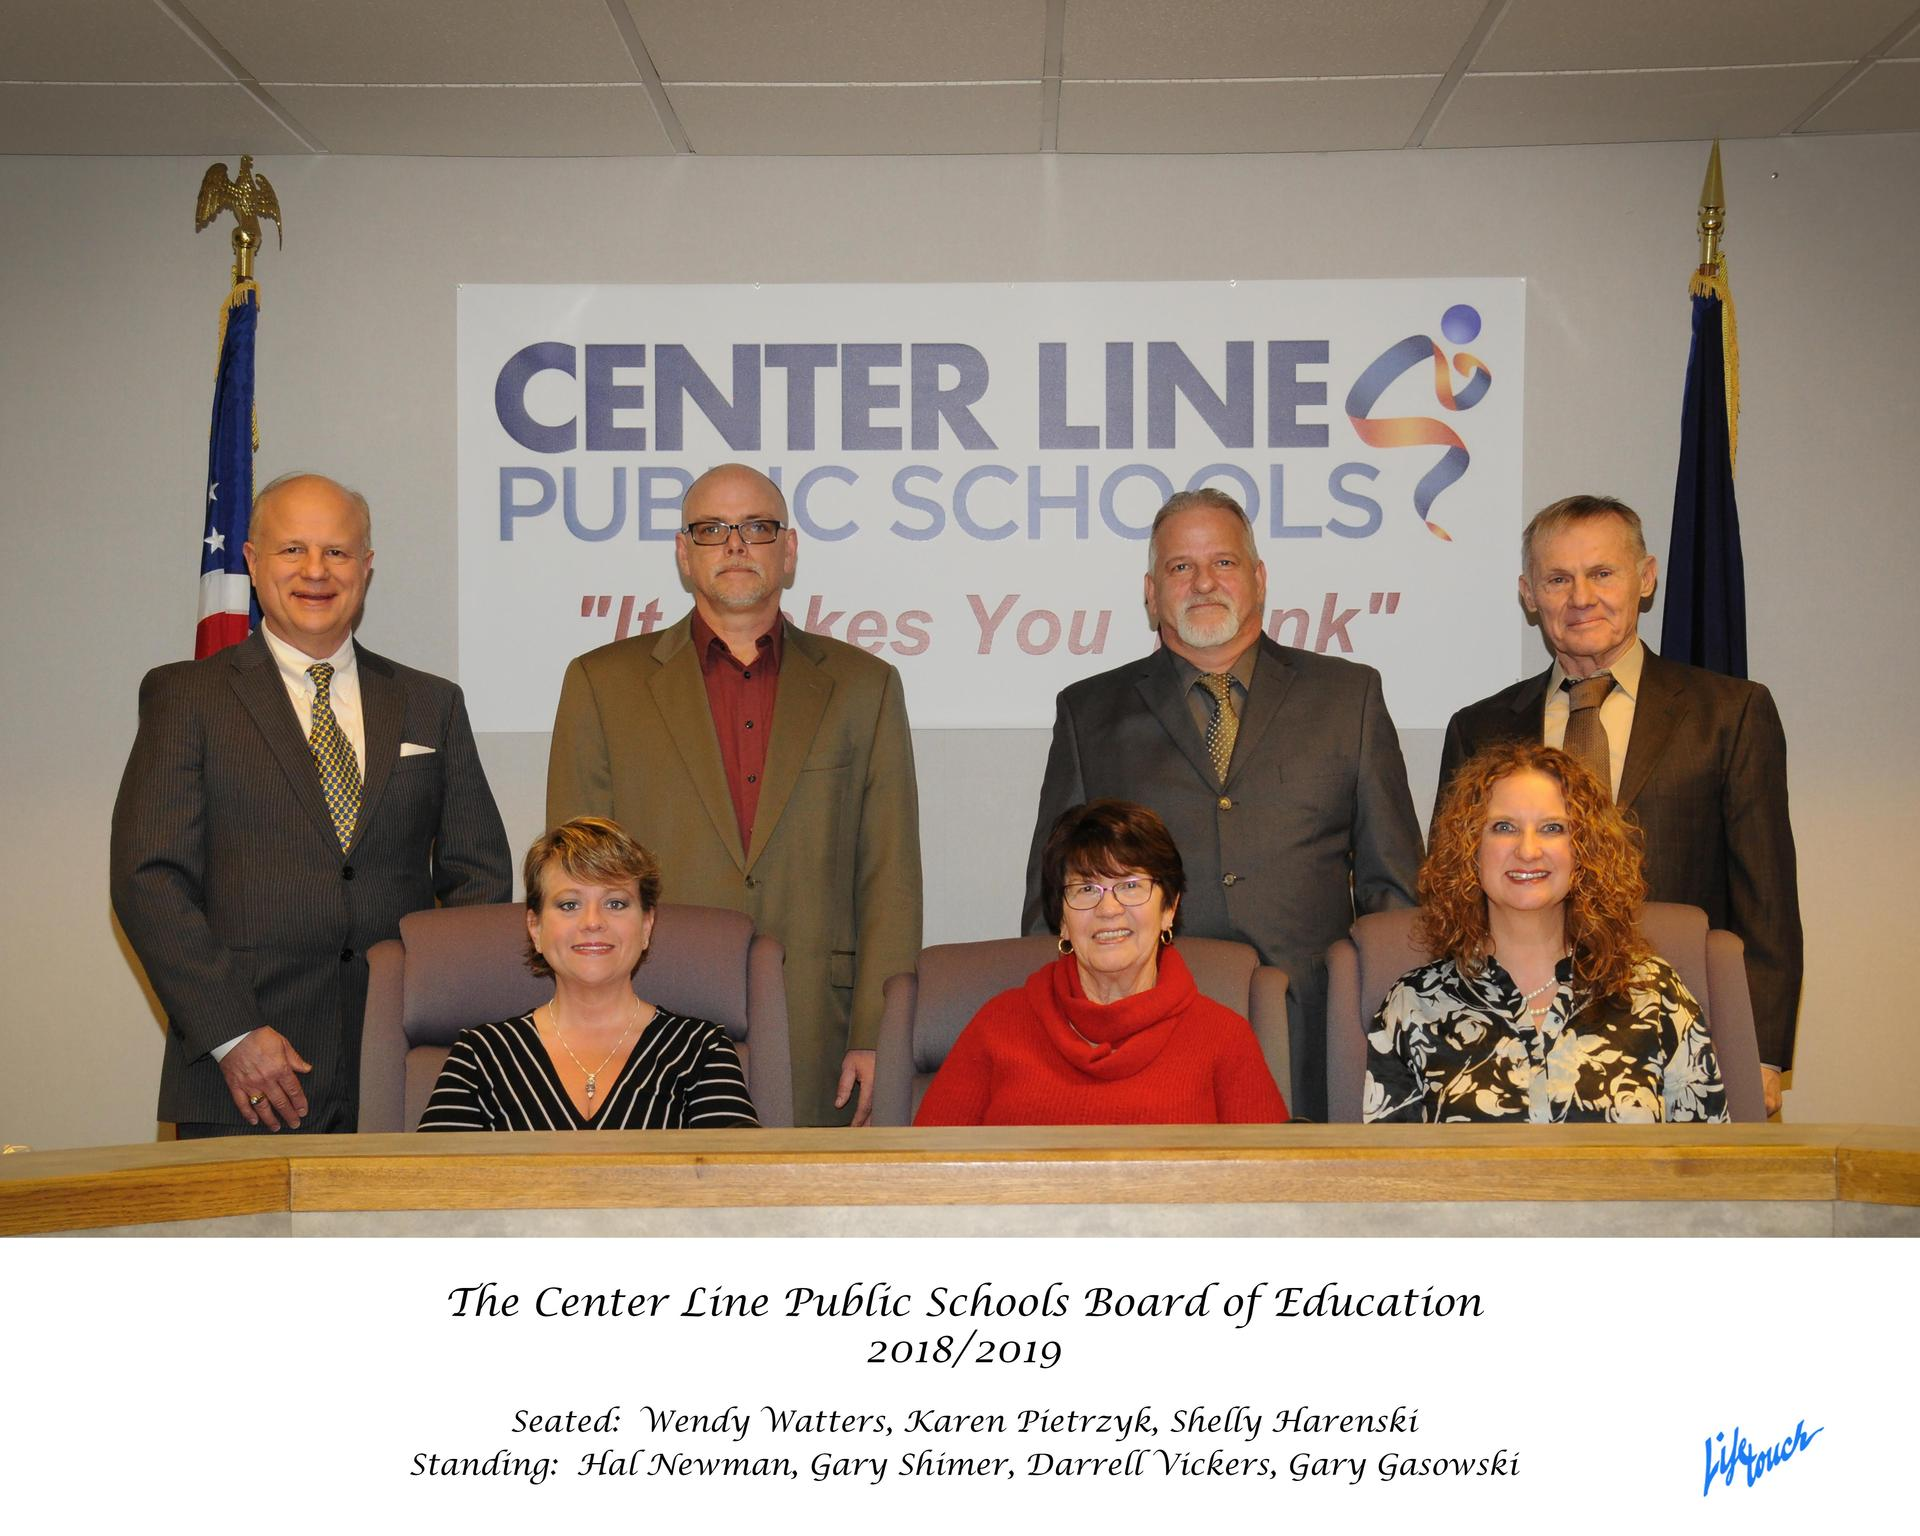 Center Line Board of Education 2019 with listed members